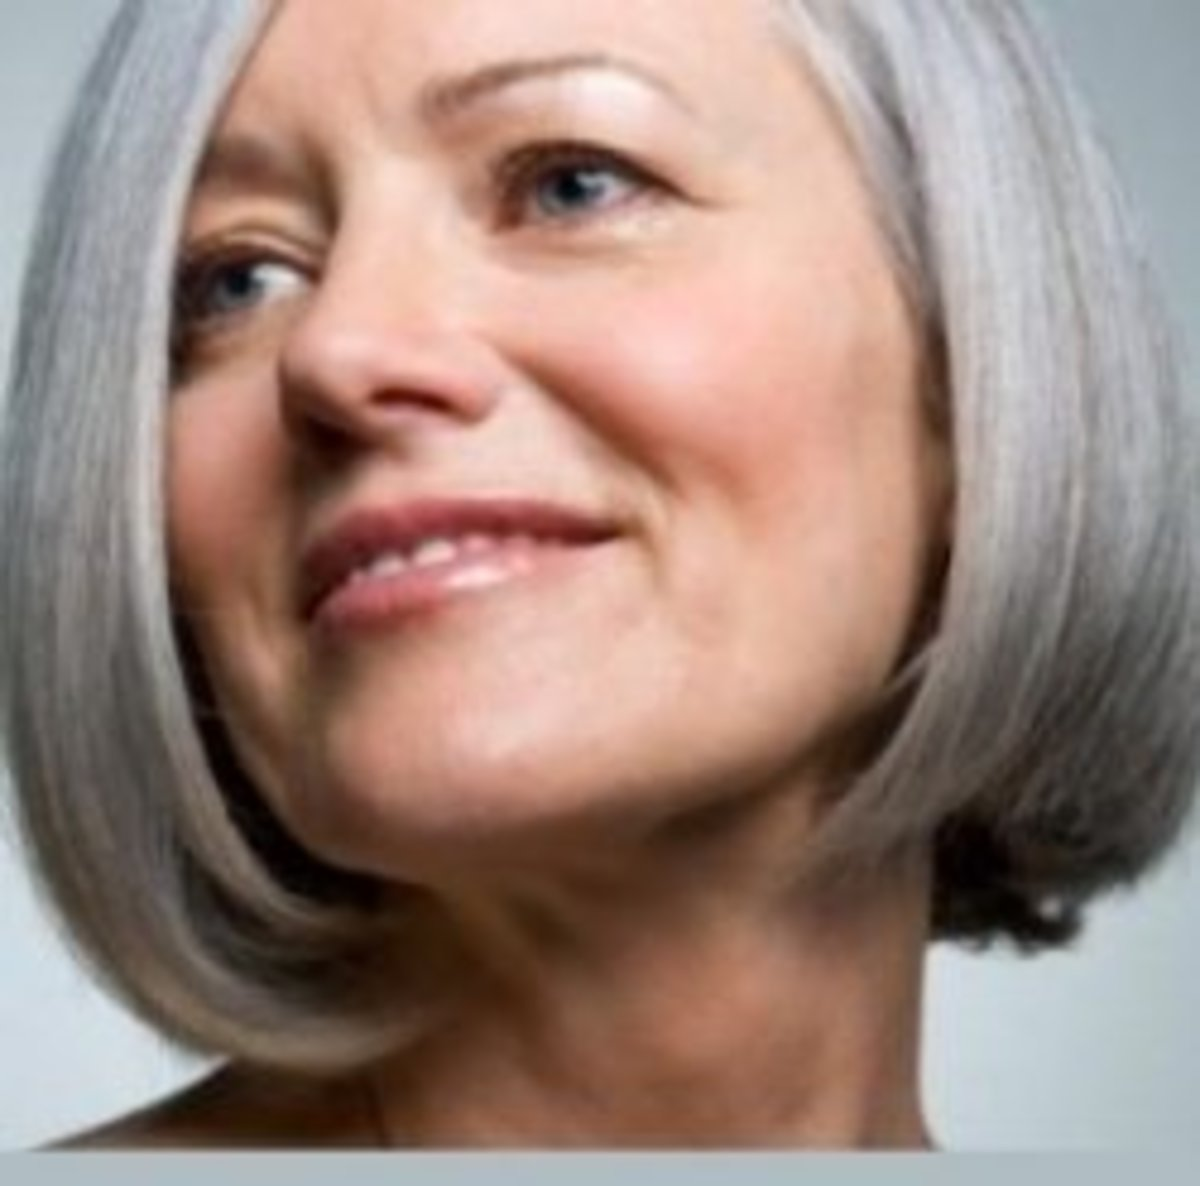 The Silver Fox: Stunning Gray Hair Styles Bellatory - Hairstyles For 60 Year Old Woman With Fine Hair